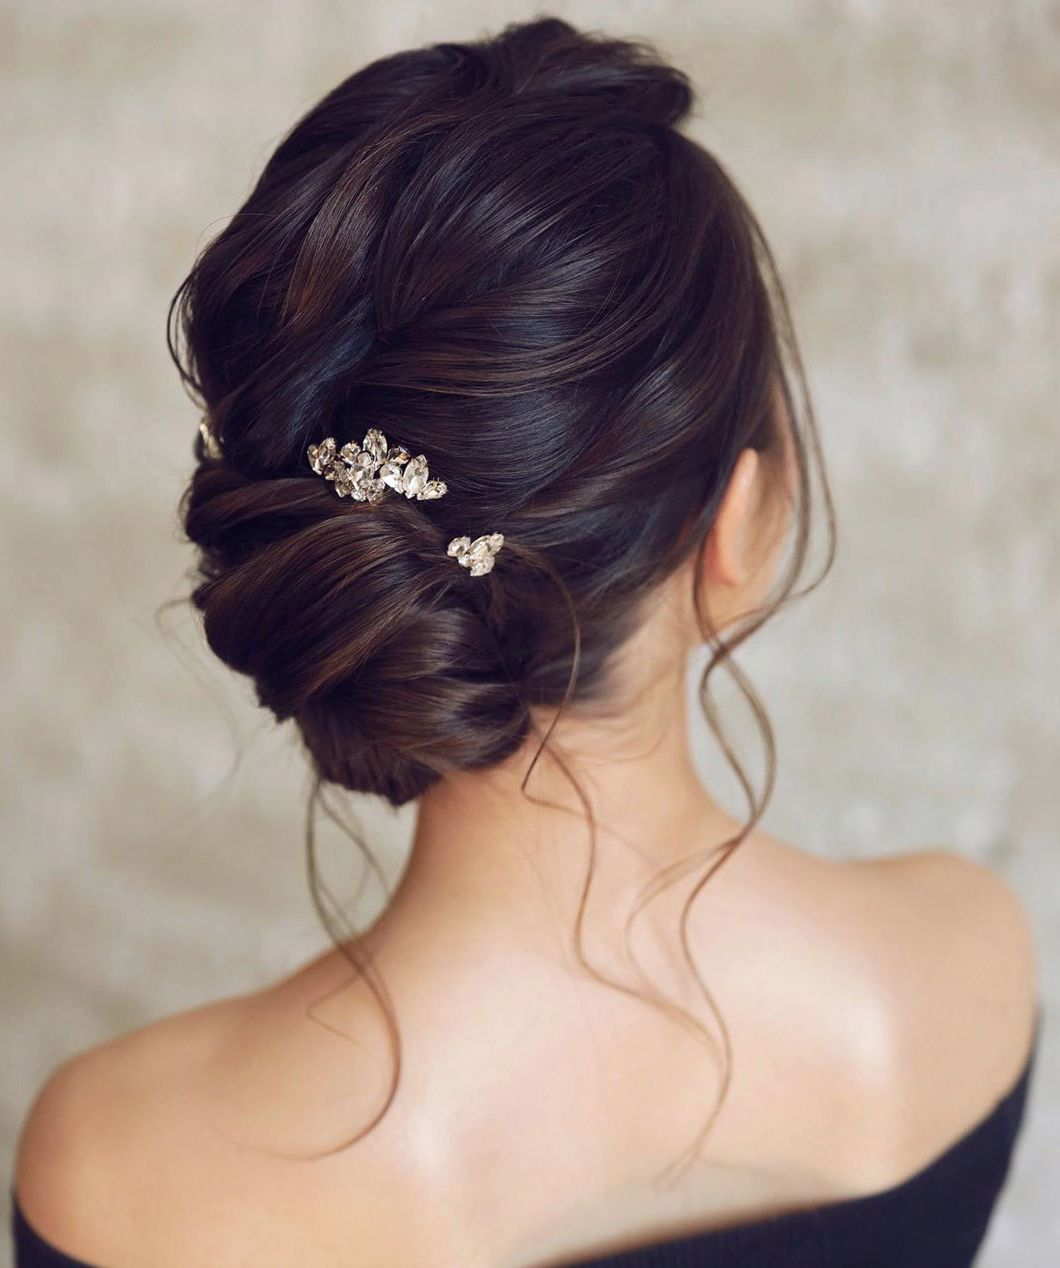 50 Updos For Long Hair To Suit Any Occasion Hair Adviser